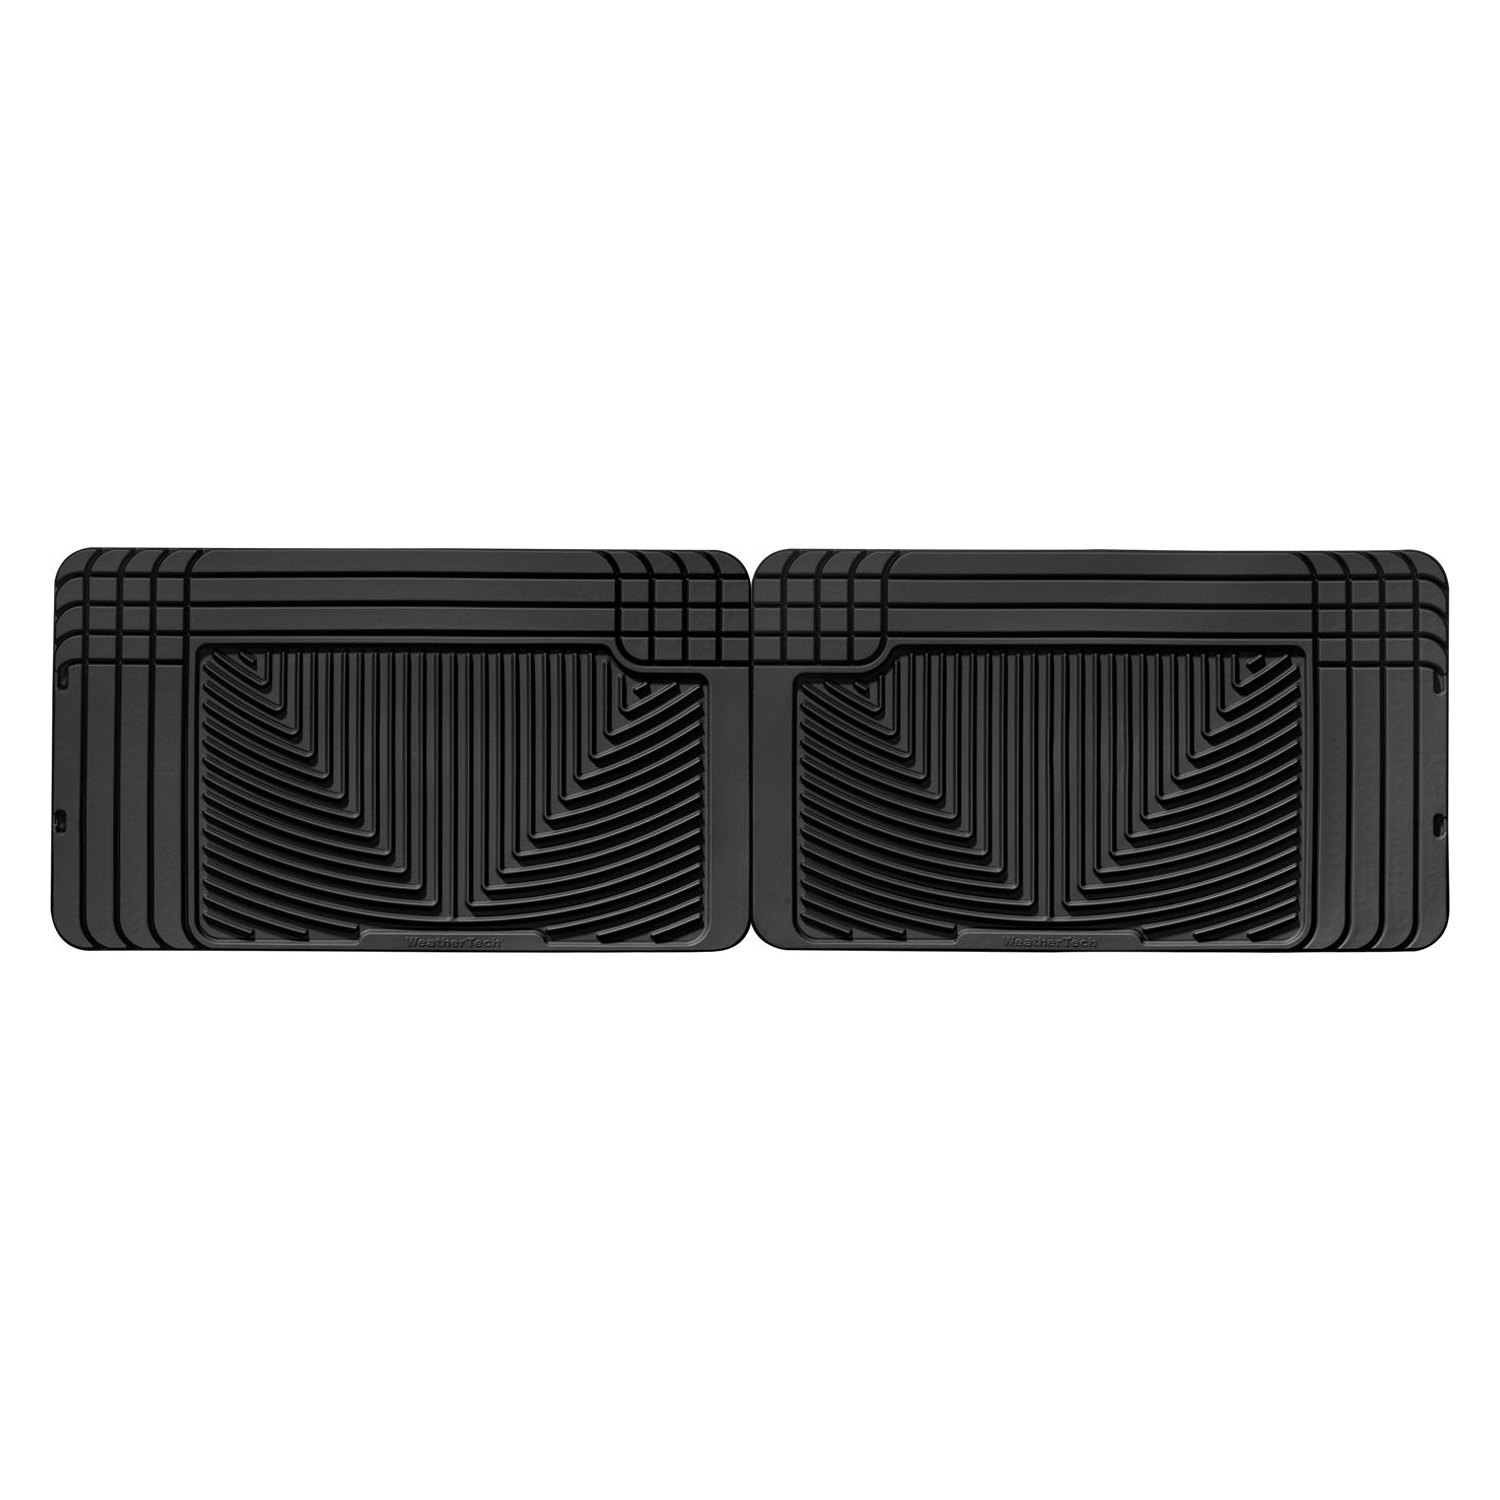 WeatherTech W25 All-Weather Trim-to-Fit Rear Rubber Mats Black